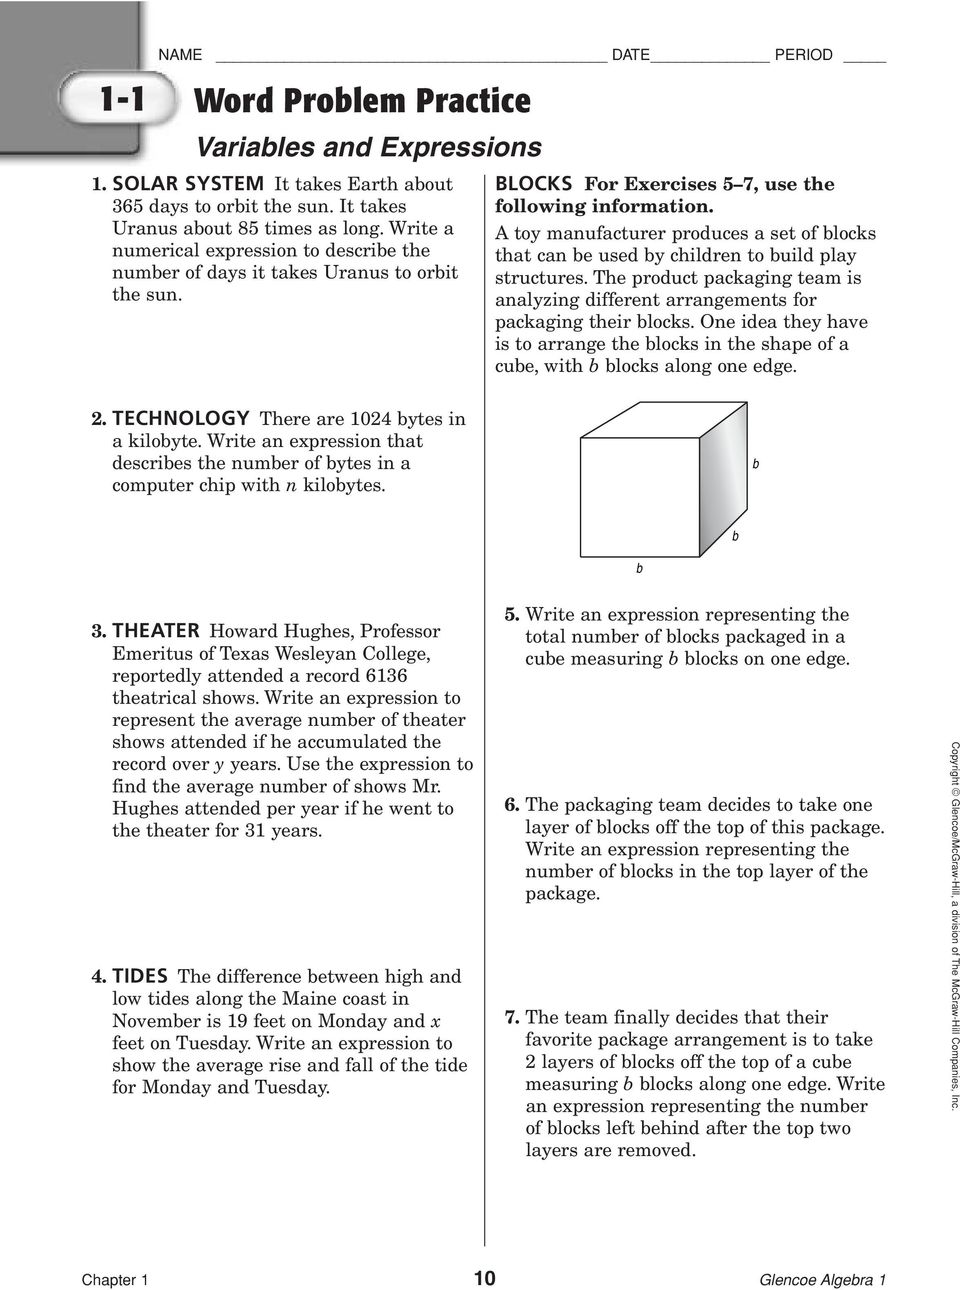 worksheet Algebra 1 Practice Worksheets algebra 2 practice problem solving workbook answers 28 images glencoe 1 answer key chapter 8 15 best